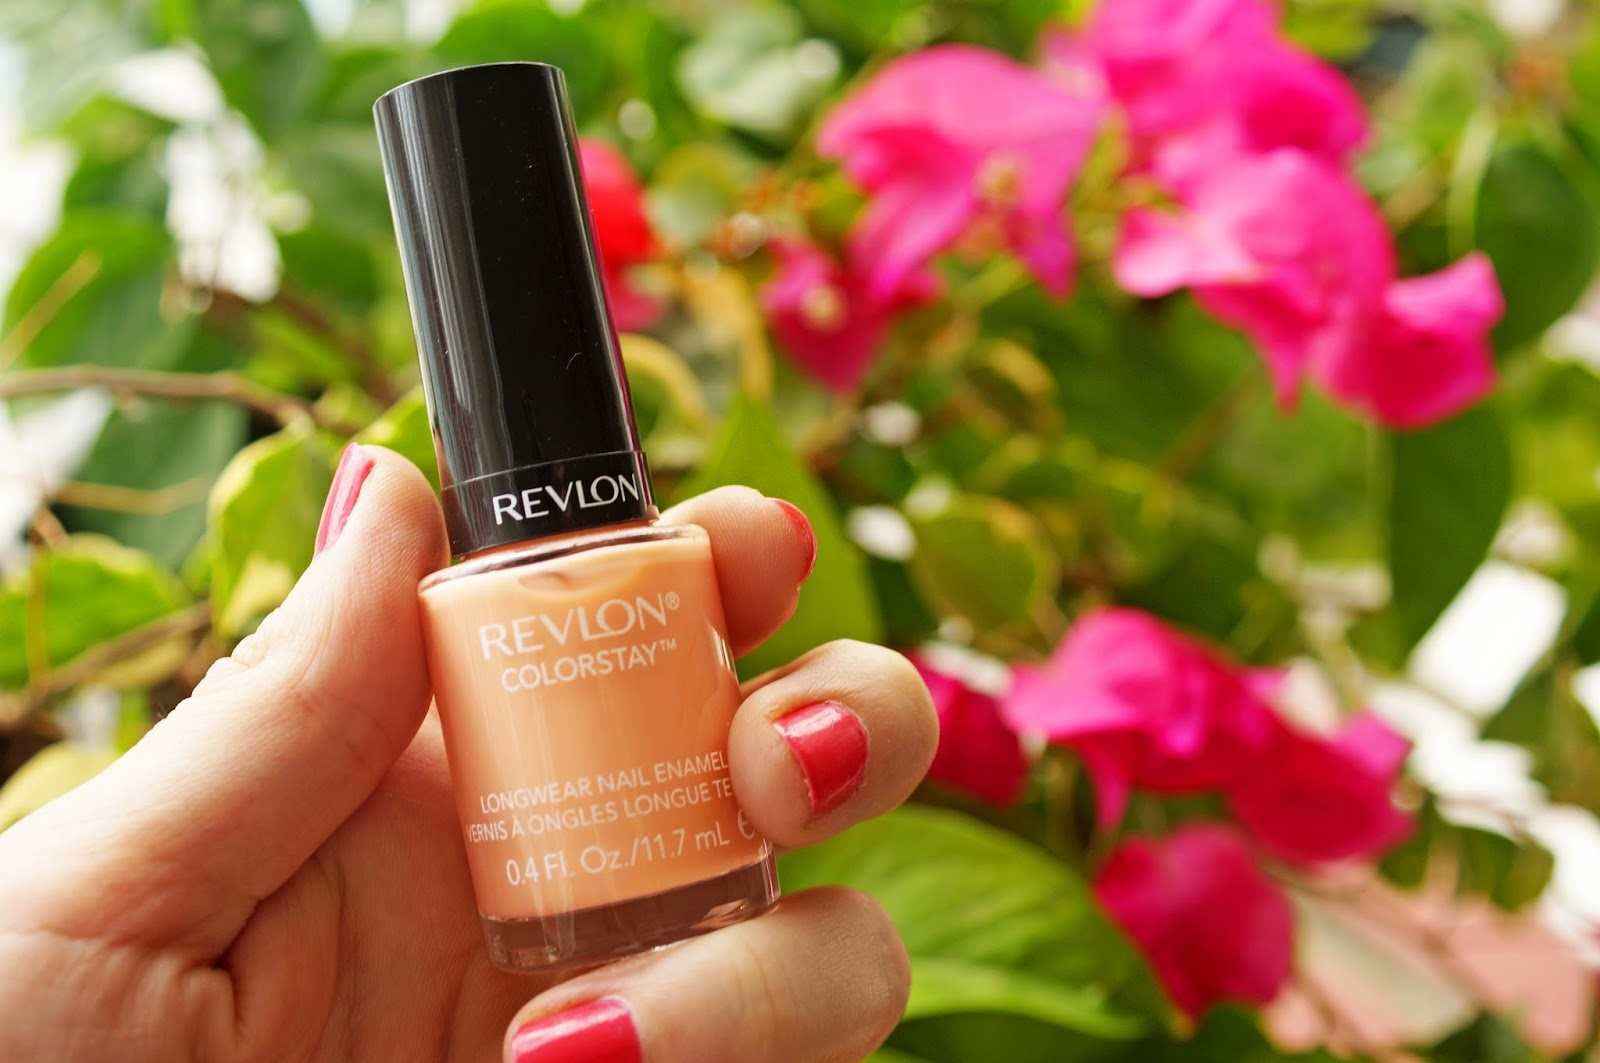 Super pretty light orange nail polish called Seashell by Revlon Colorstay